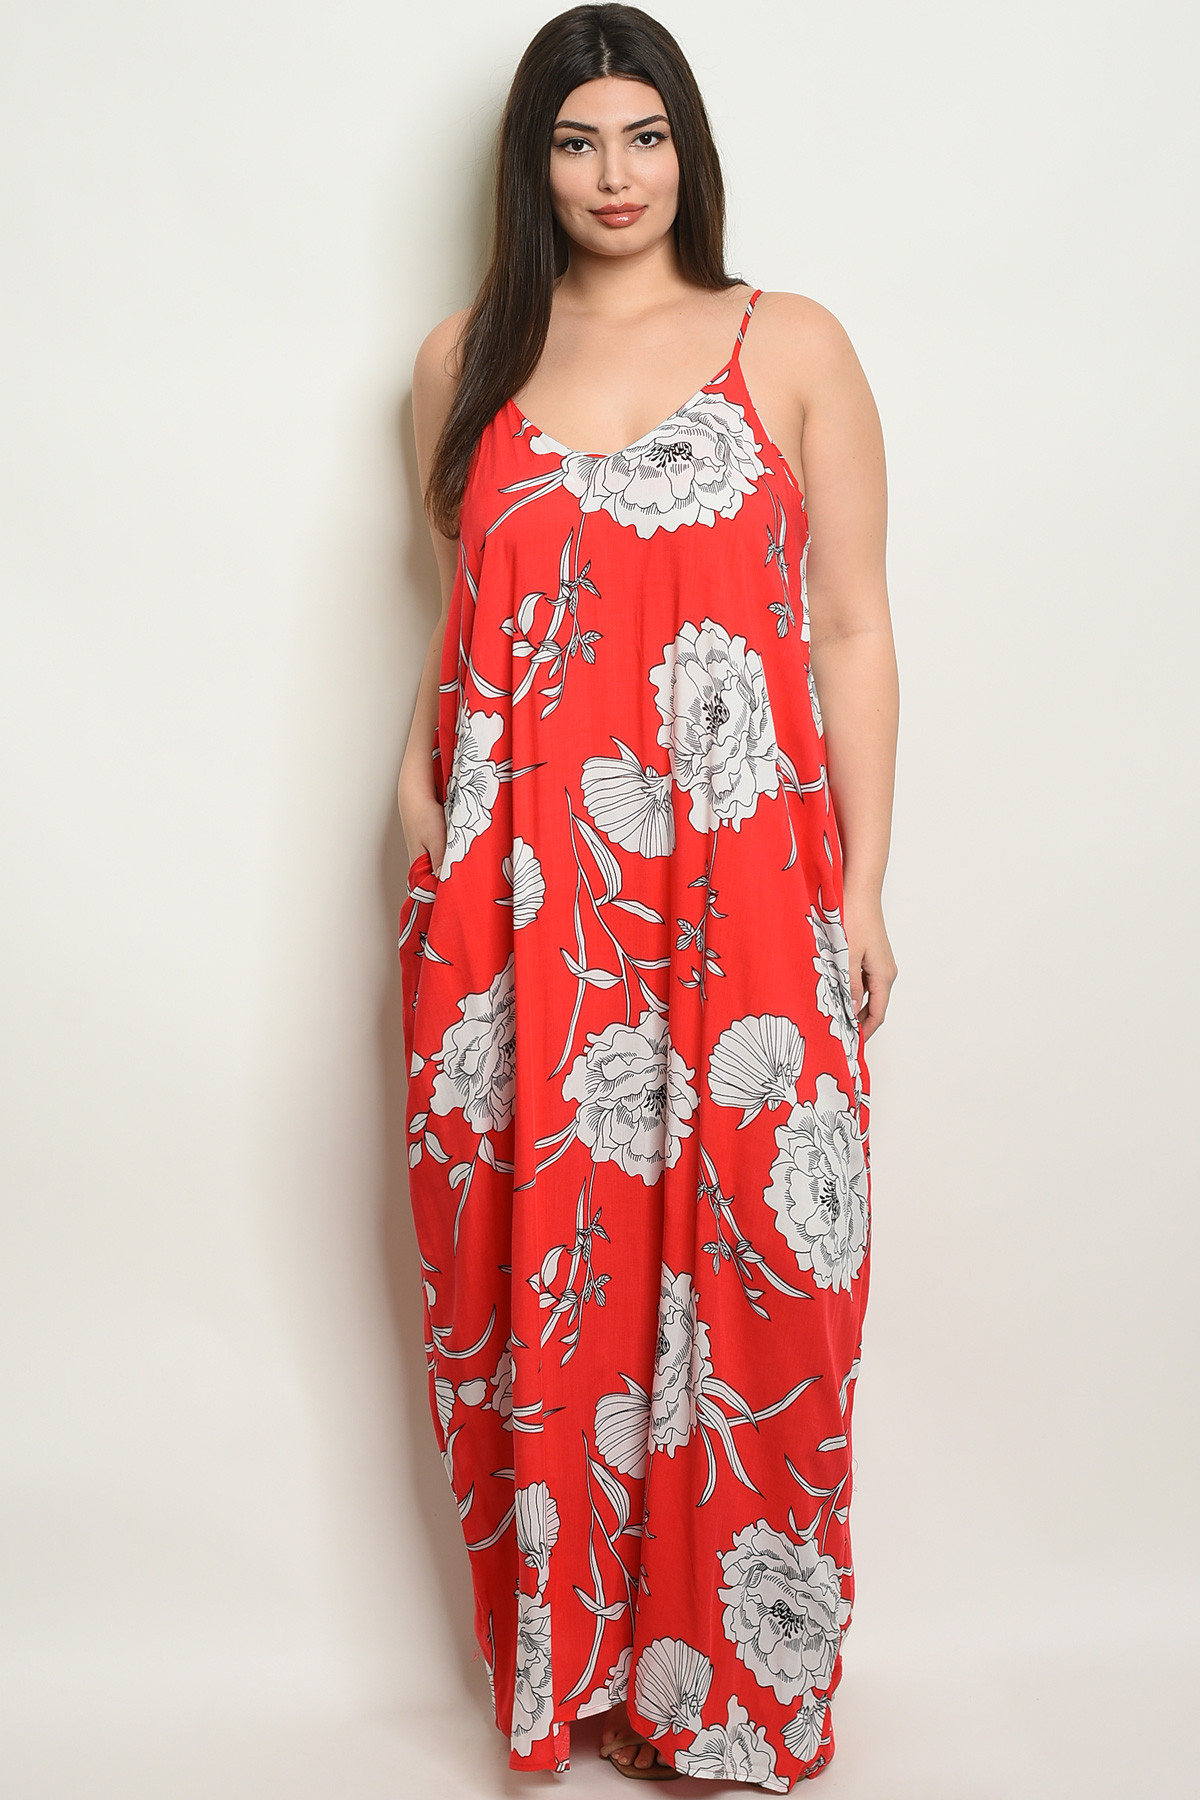 S13-8-1-D5060X RED WHITE FLORAL PLUS SIZE DRESS 2-2-2